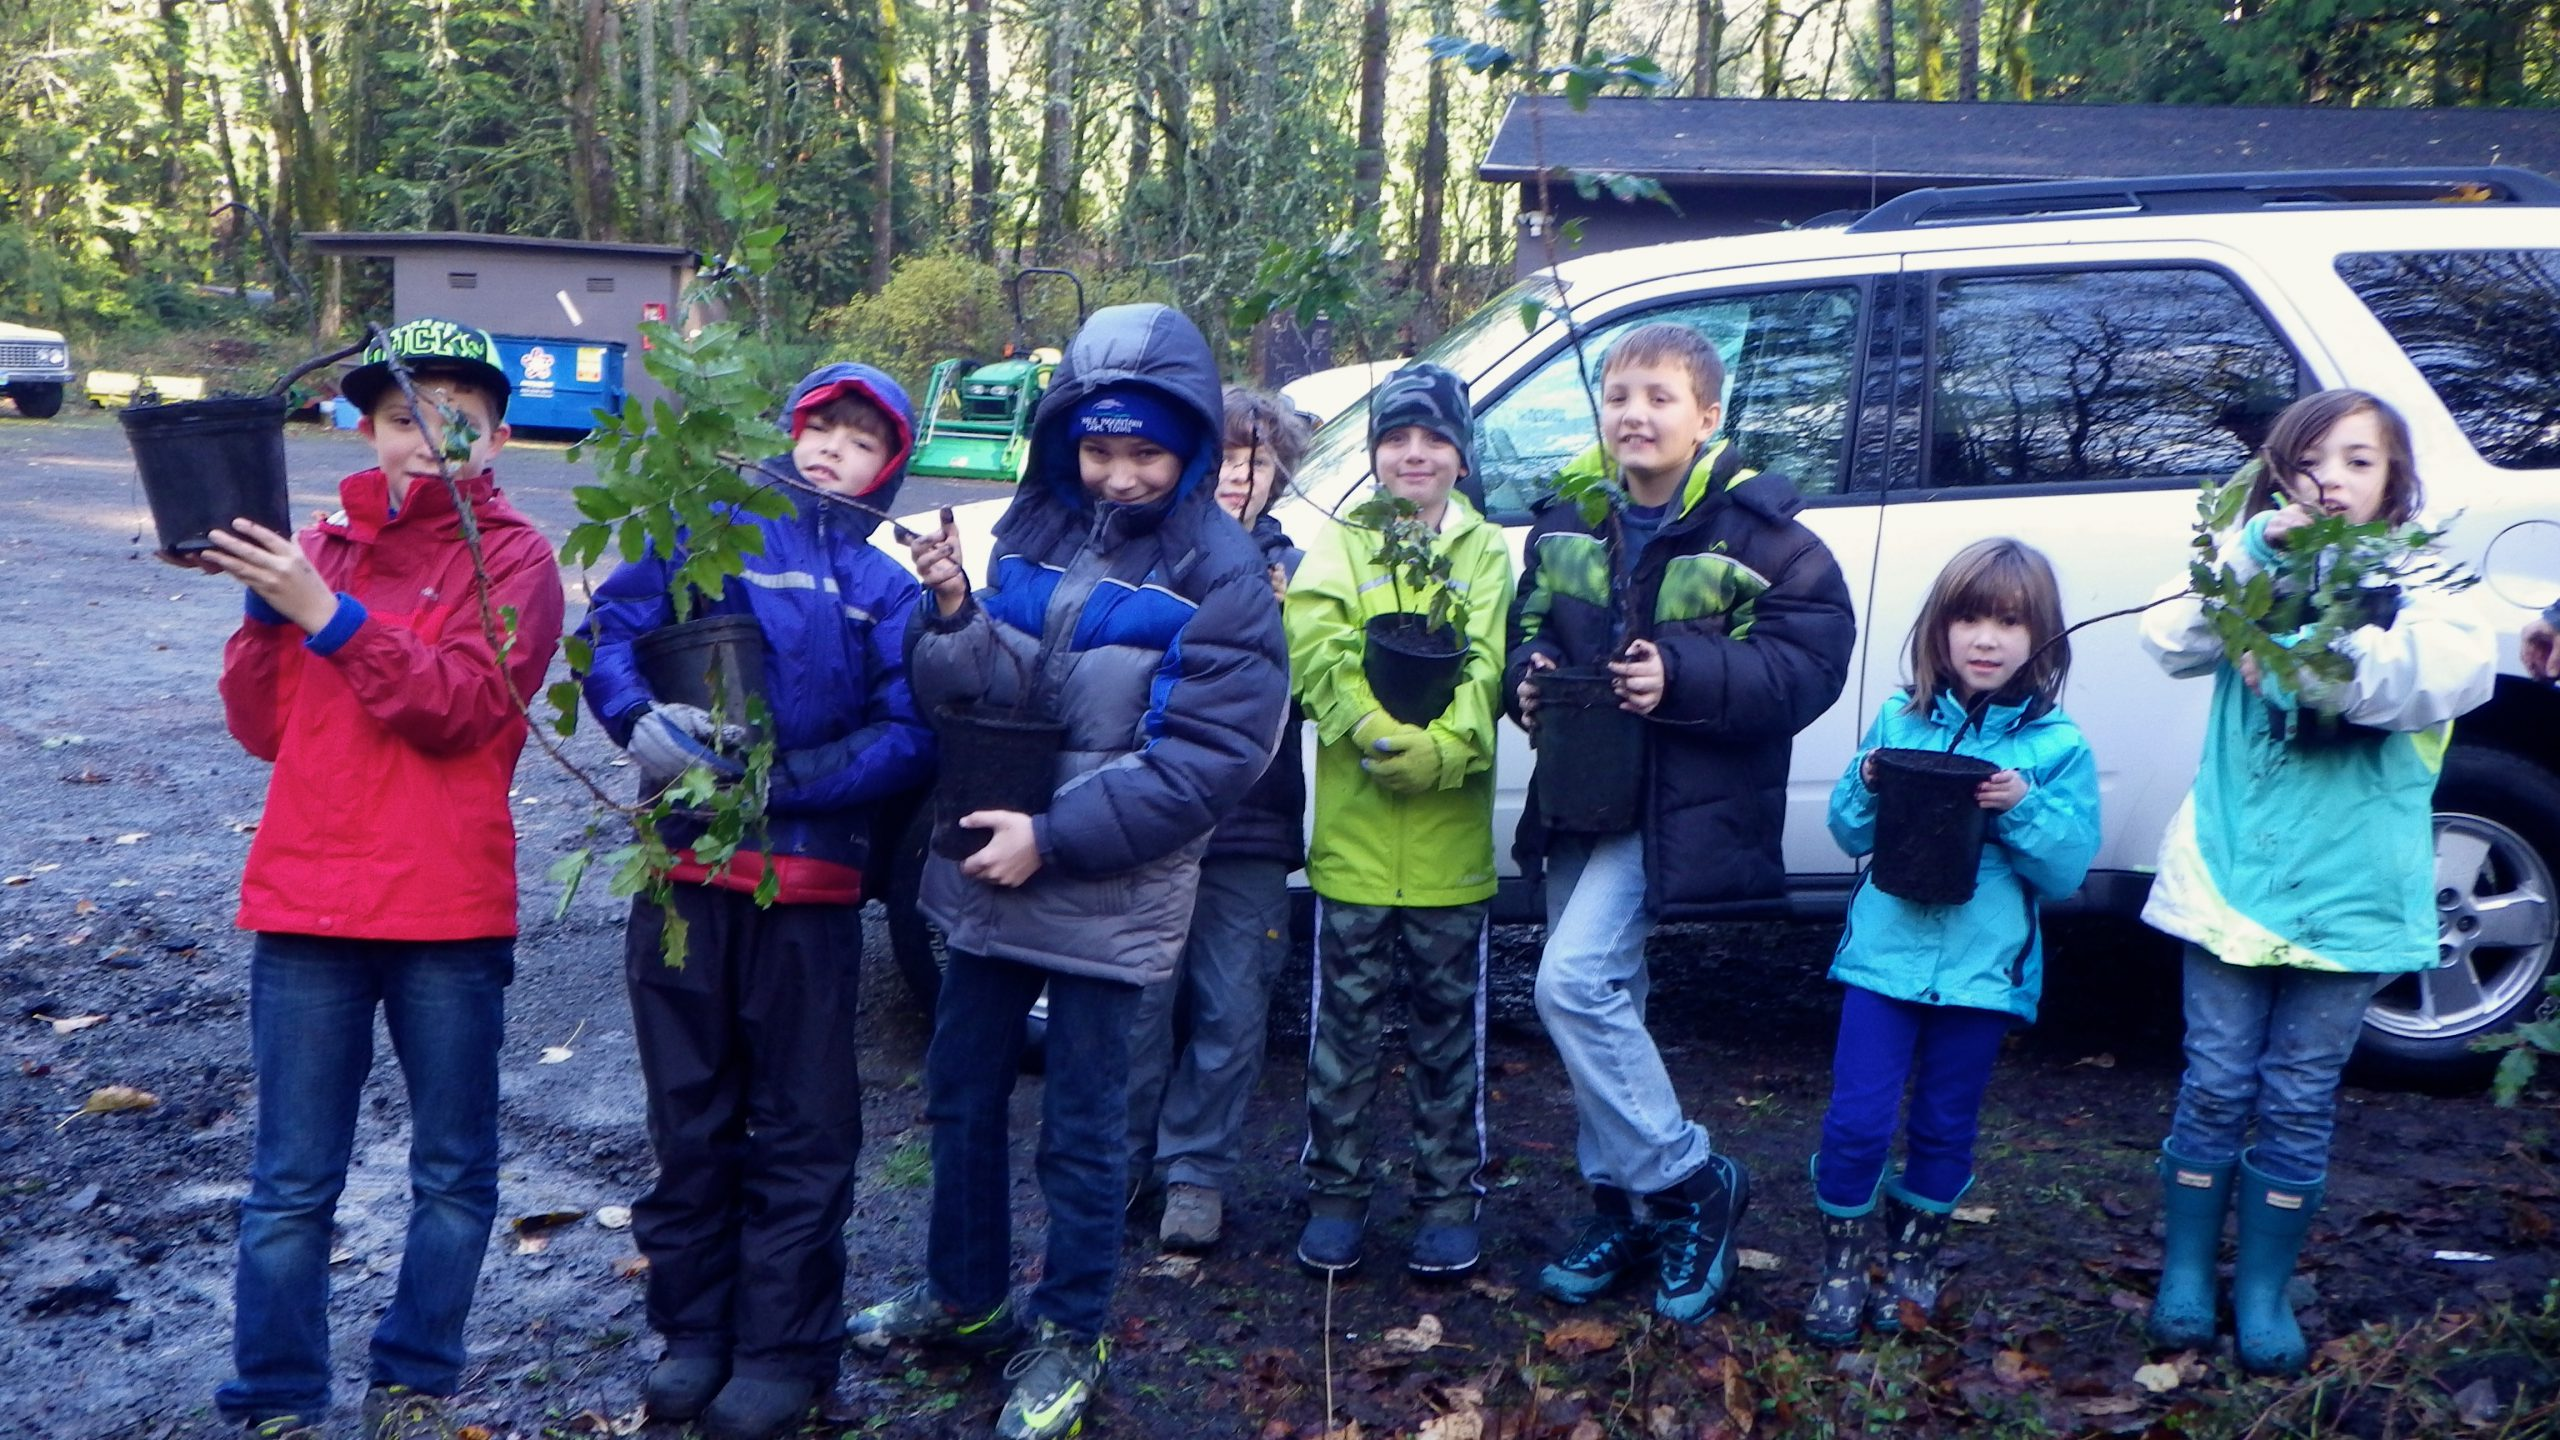 Group of 8 children outdoors wearing jackets holding potted native plants.